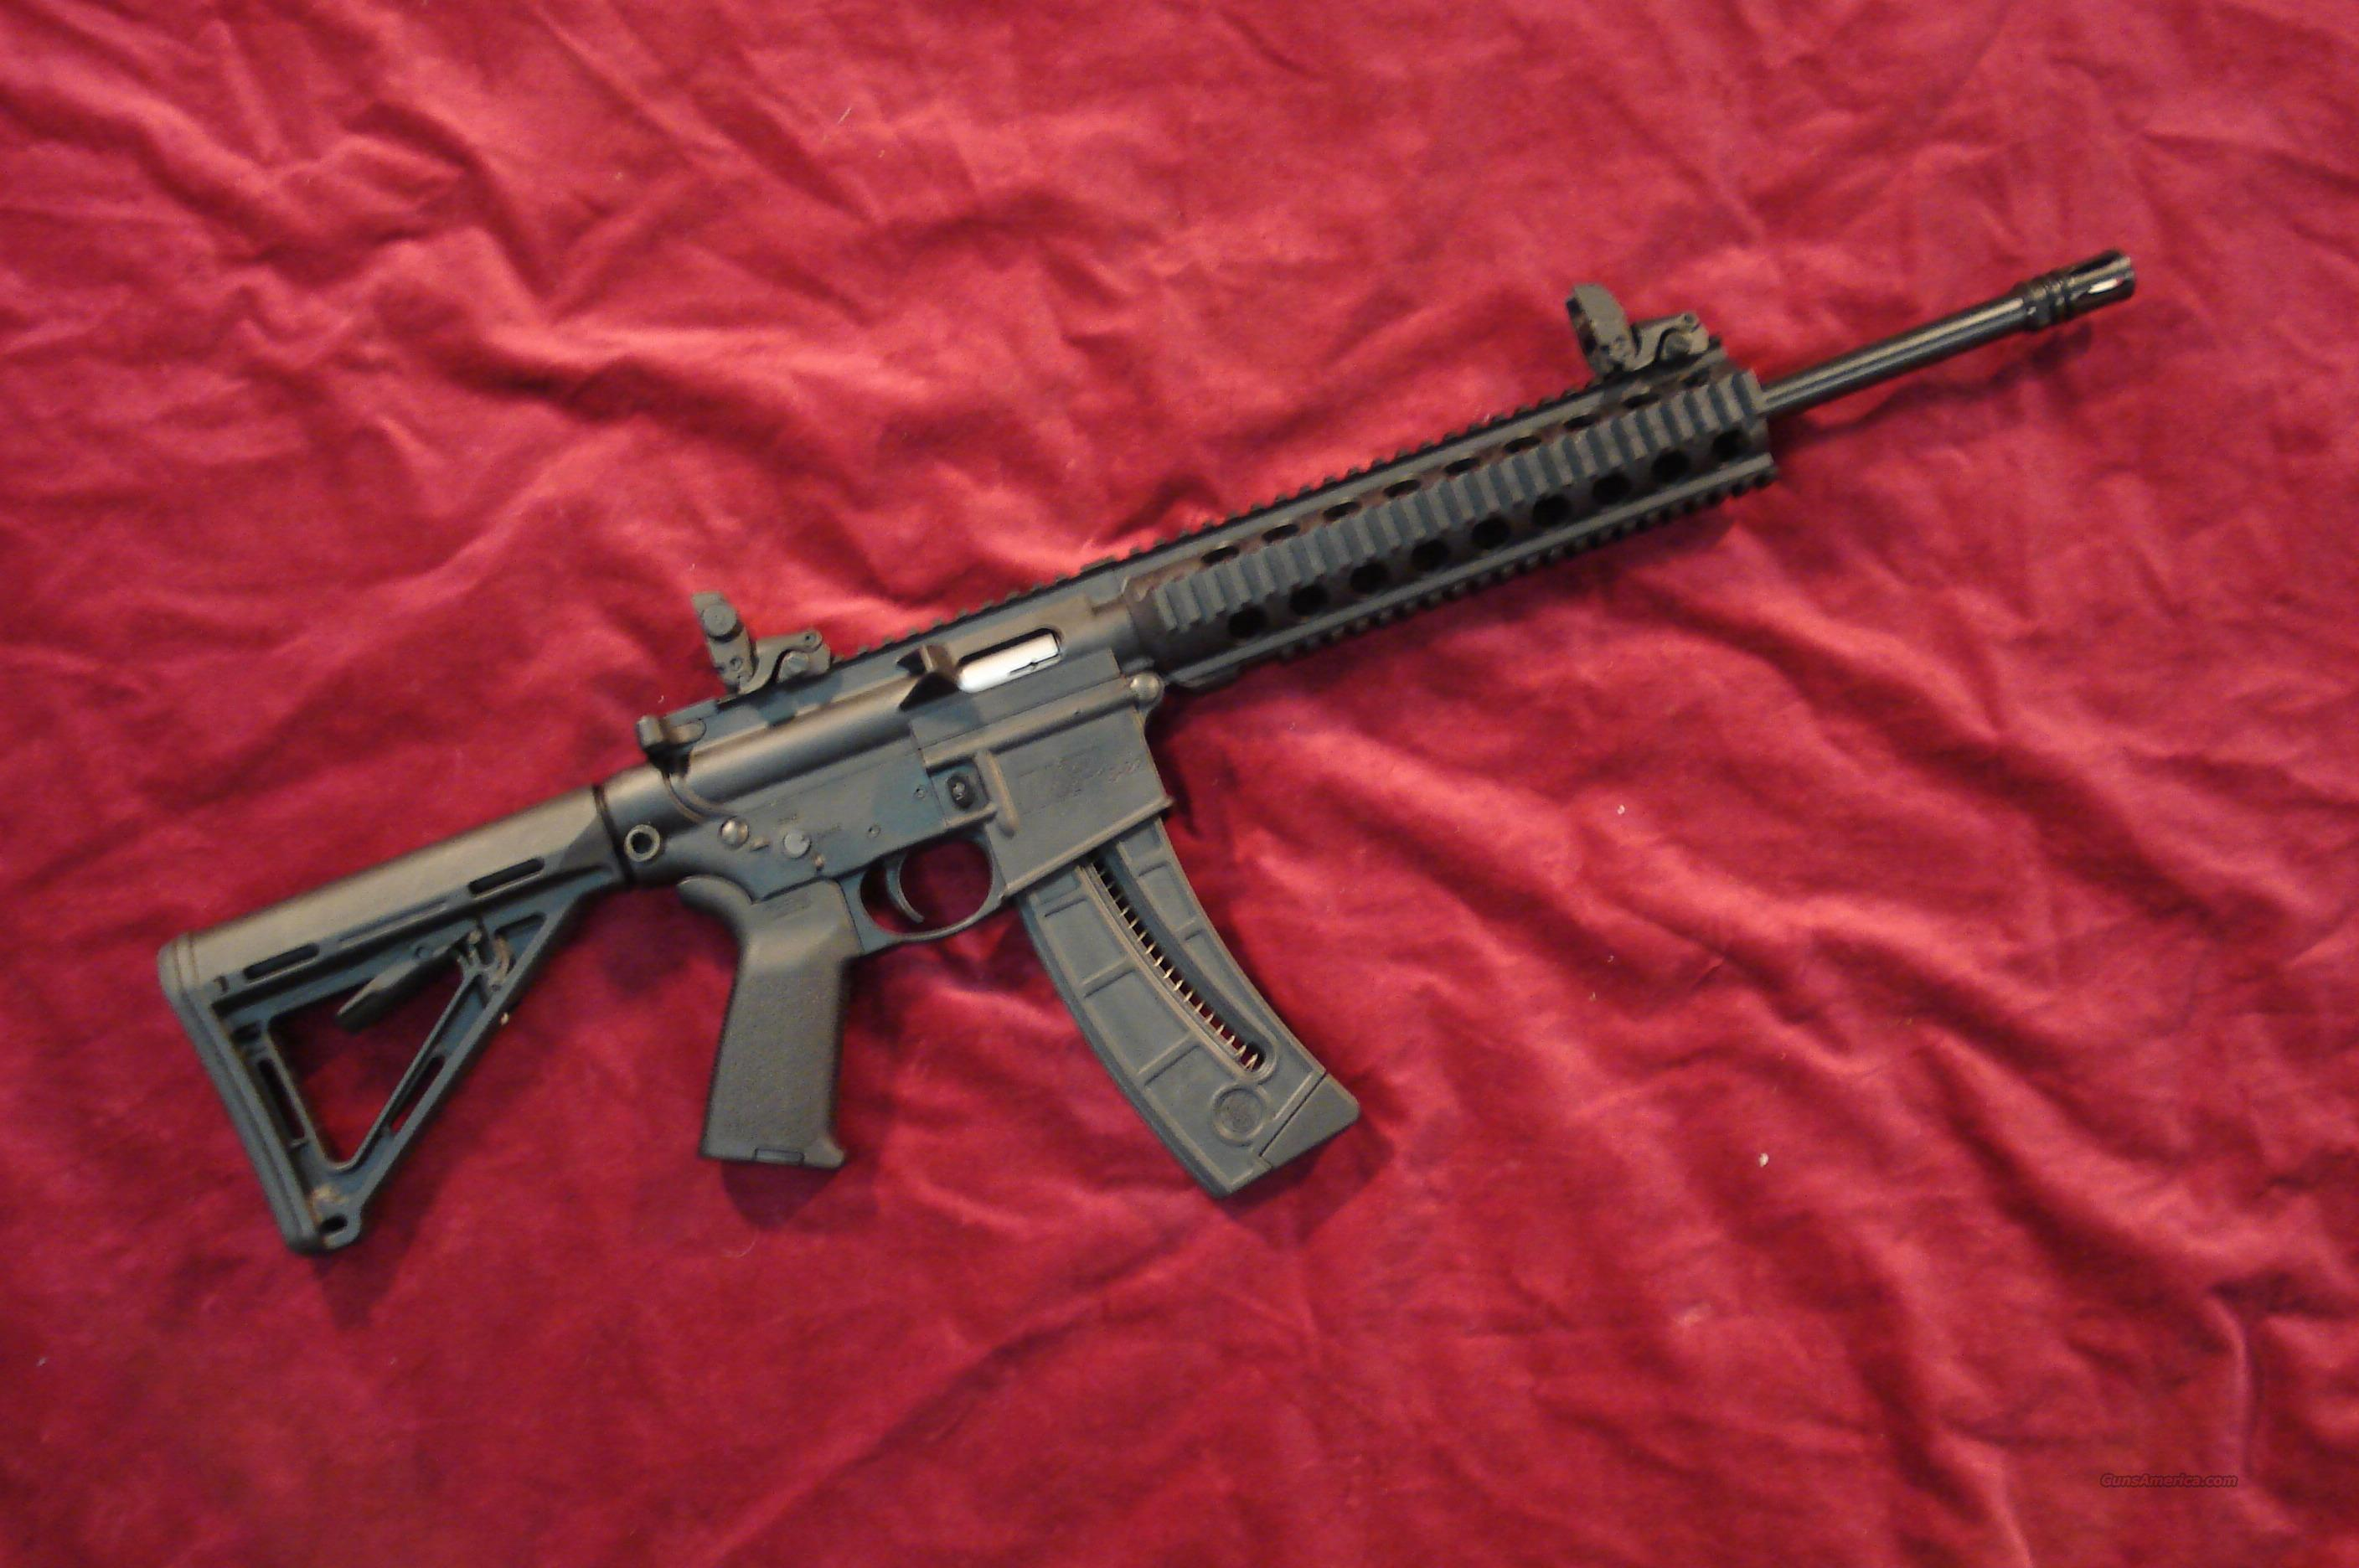 SMITH & WESSON M&P15-22 M.O.E. ( MAGPUL ORIGINAL EQUIPTMENT )WITH COMP. NEW  Guns > Rifles > Smith & Wesson Rifles > M&P